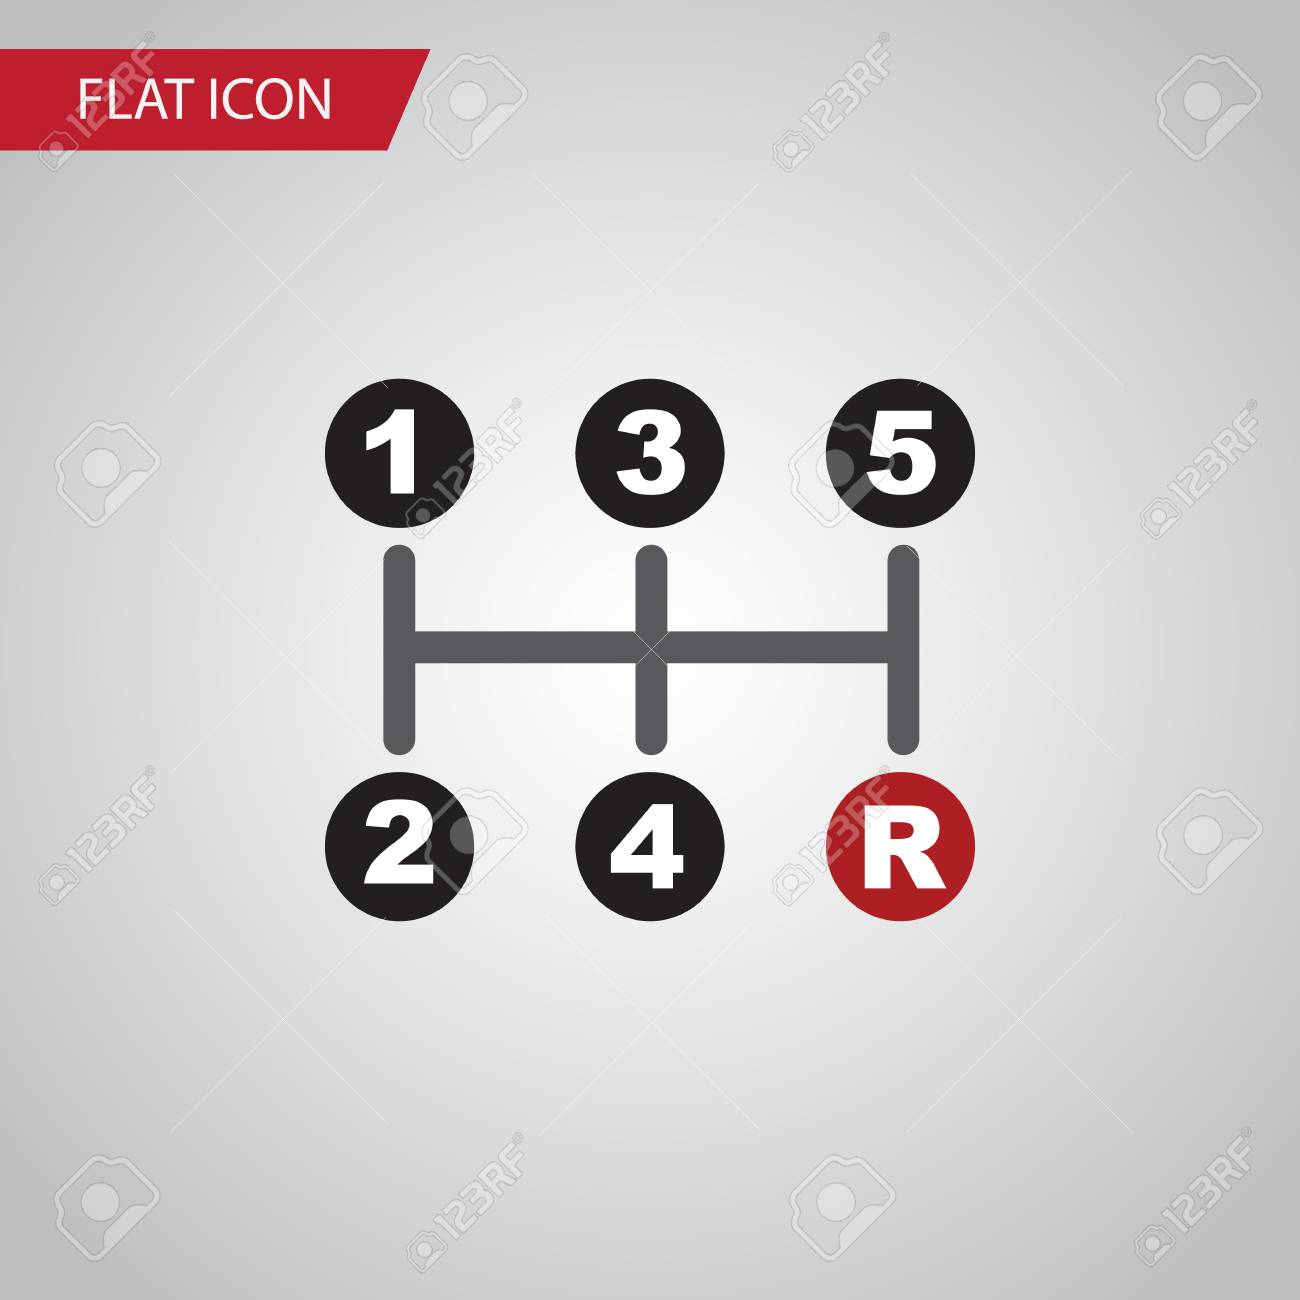 Isolated Manual Transmission Flat Icon Carrying Vector Element Royalty Free Cliparts Vectors And Stock Illustration Image 81623726